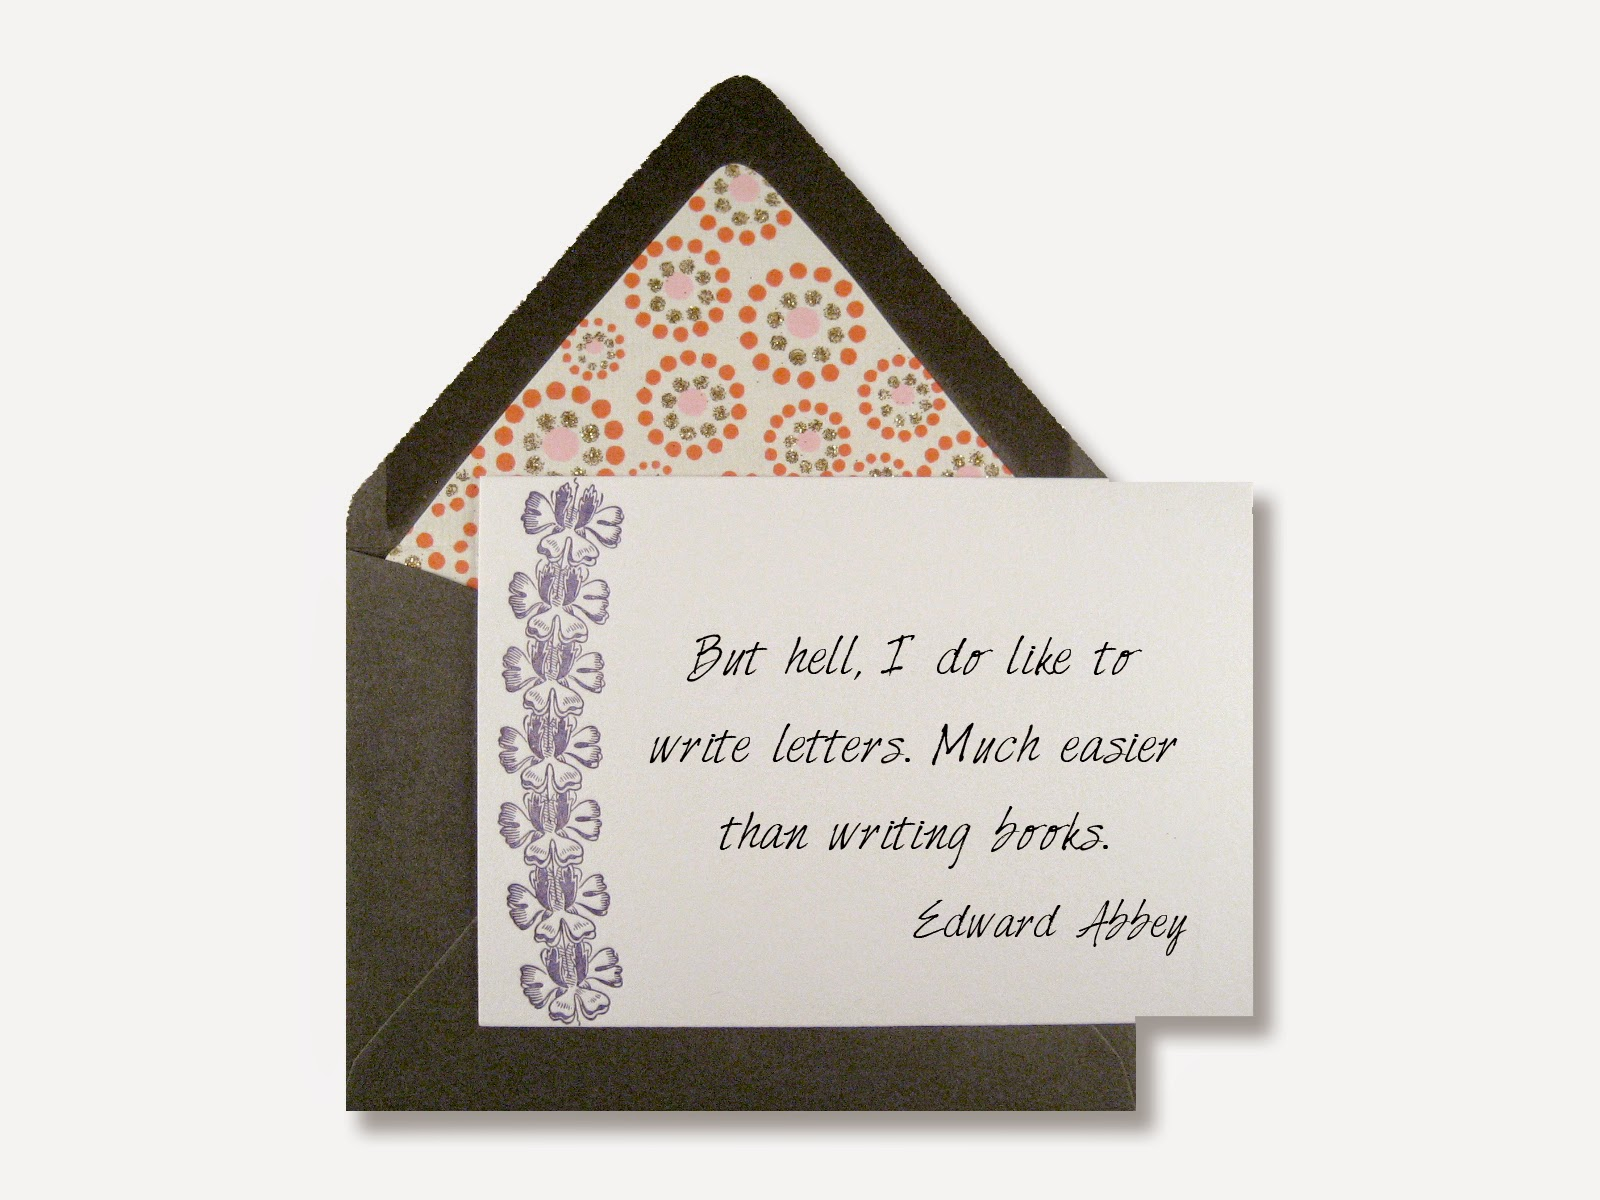 But hell, I do like to write letters. Much easier than writing books. Edward Abbey